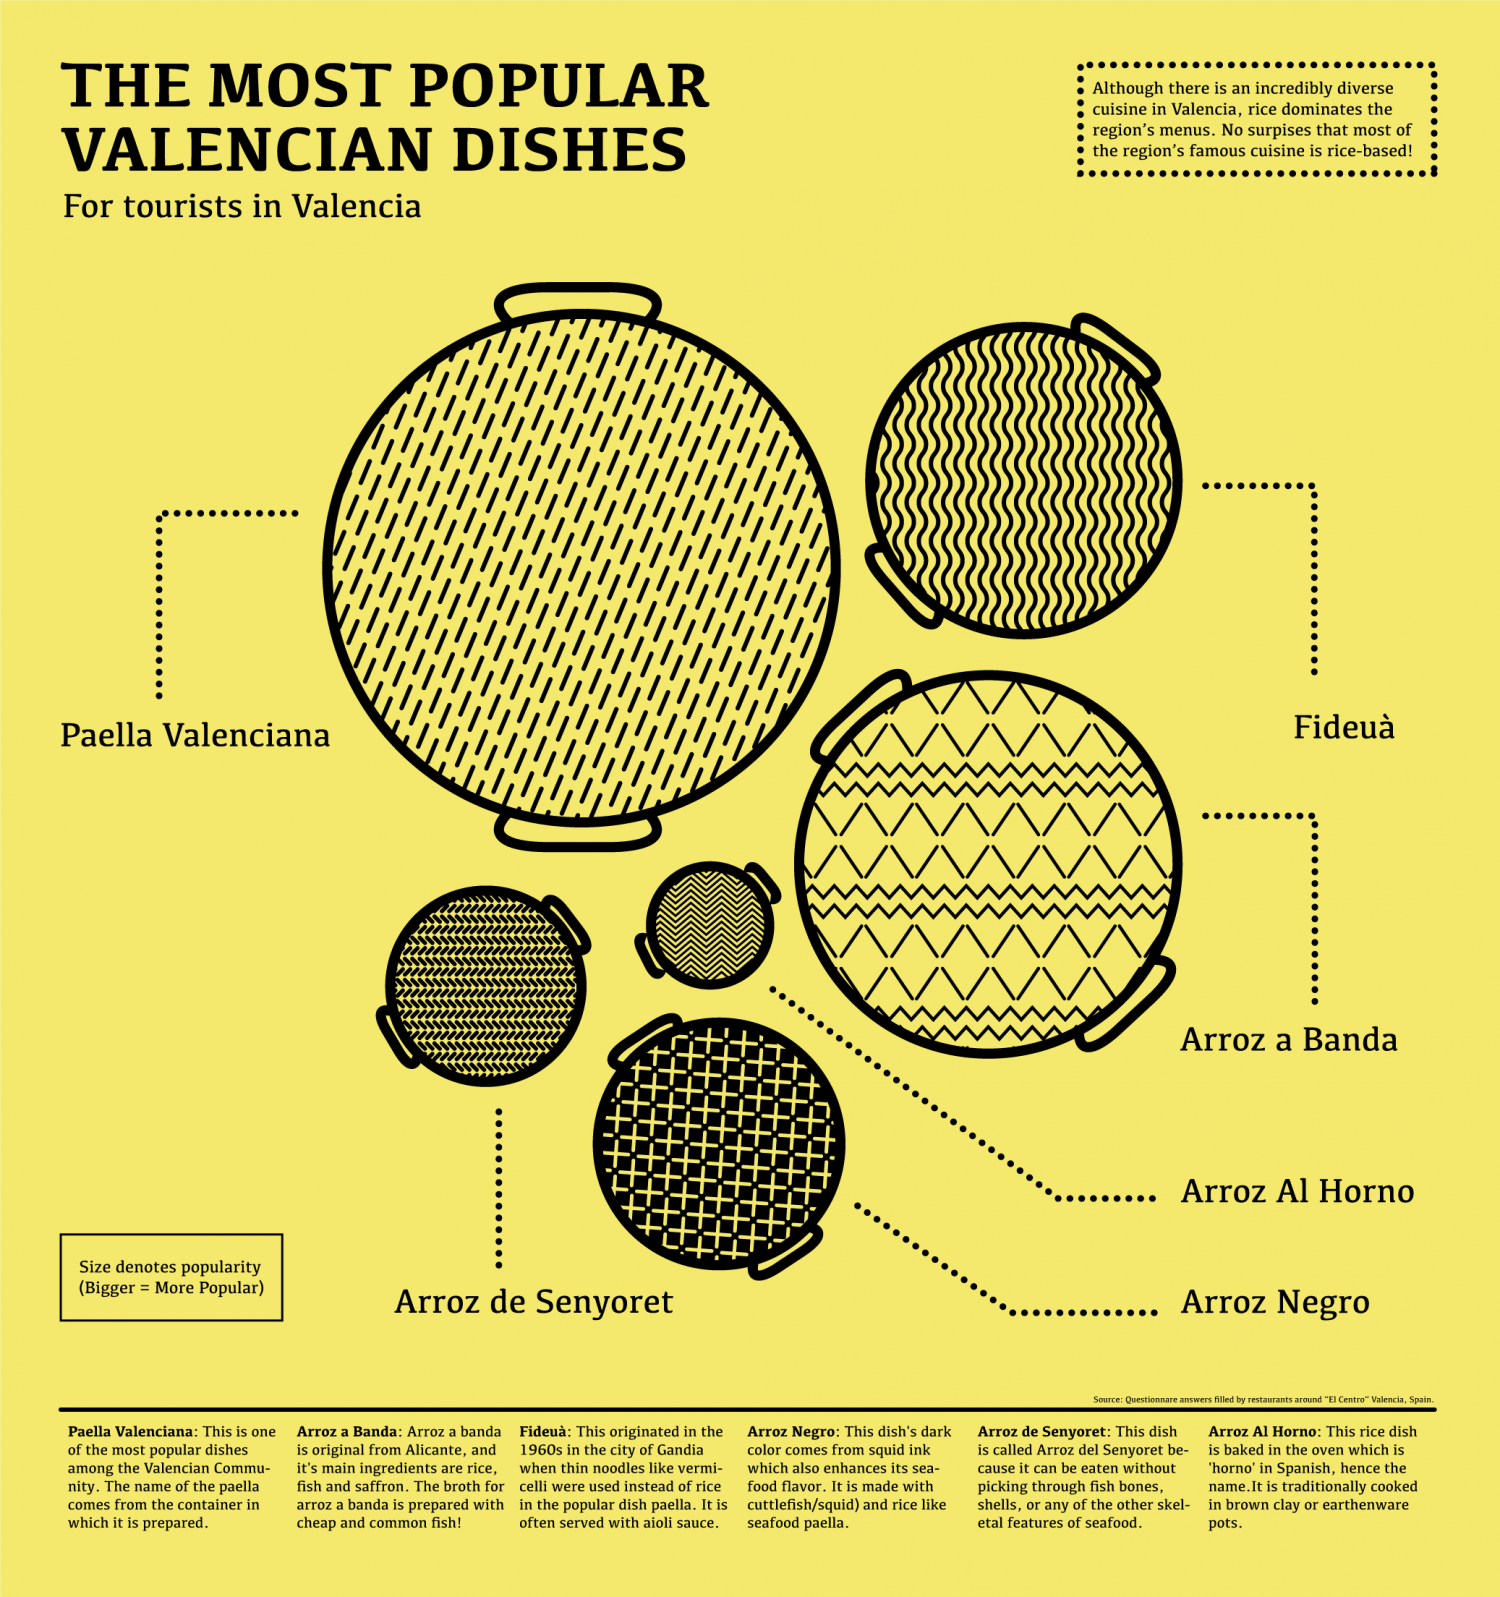 The Most Popular Valencian Dishes Among Tourists Infographic